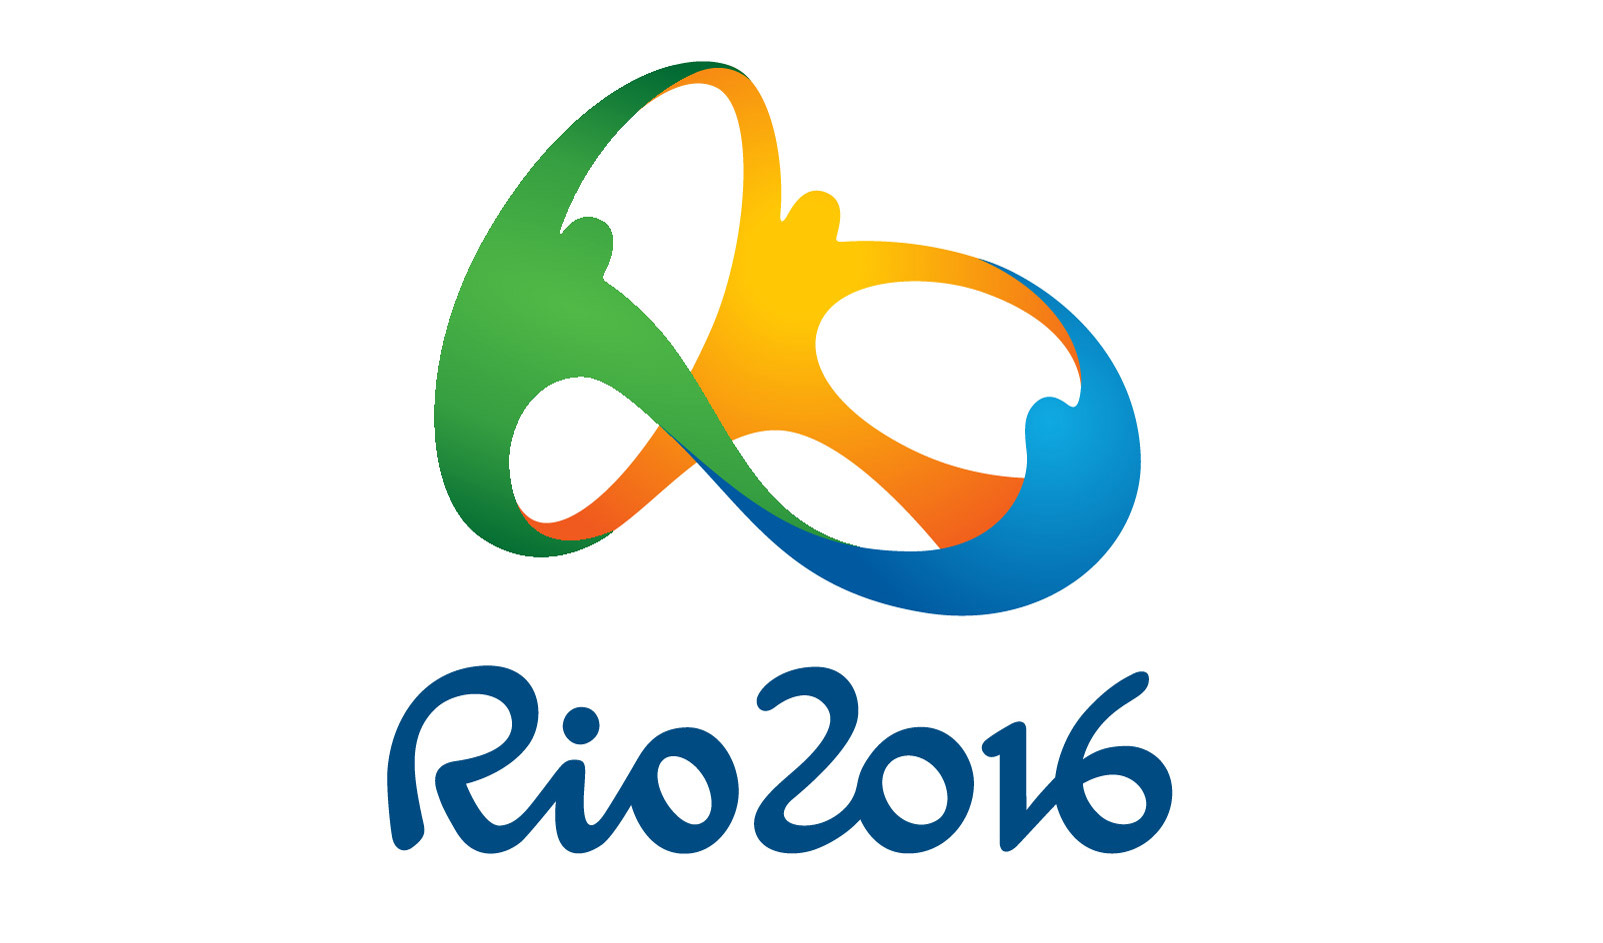 Rio 2016 Olympic Logo Vector Graphic_7